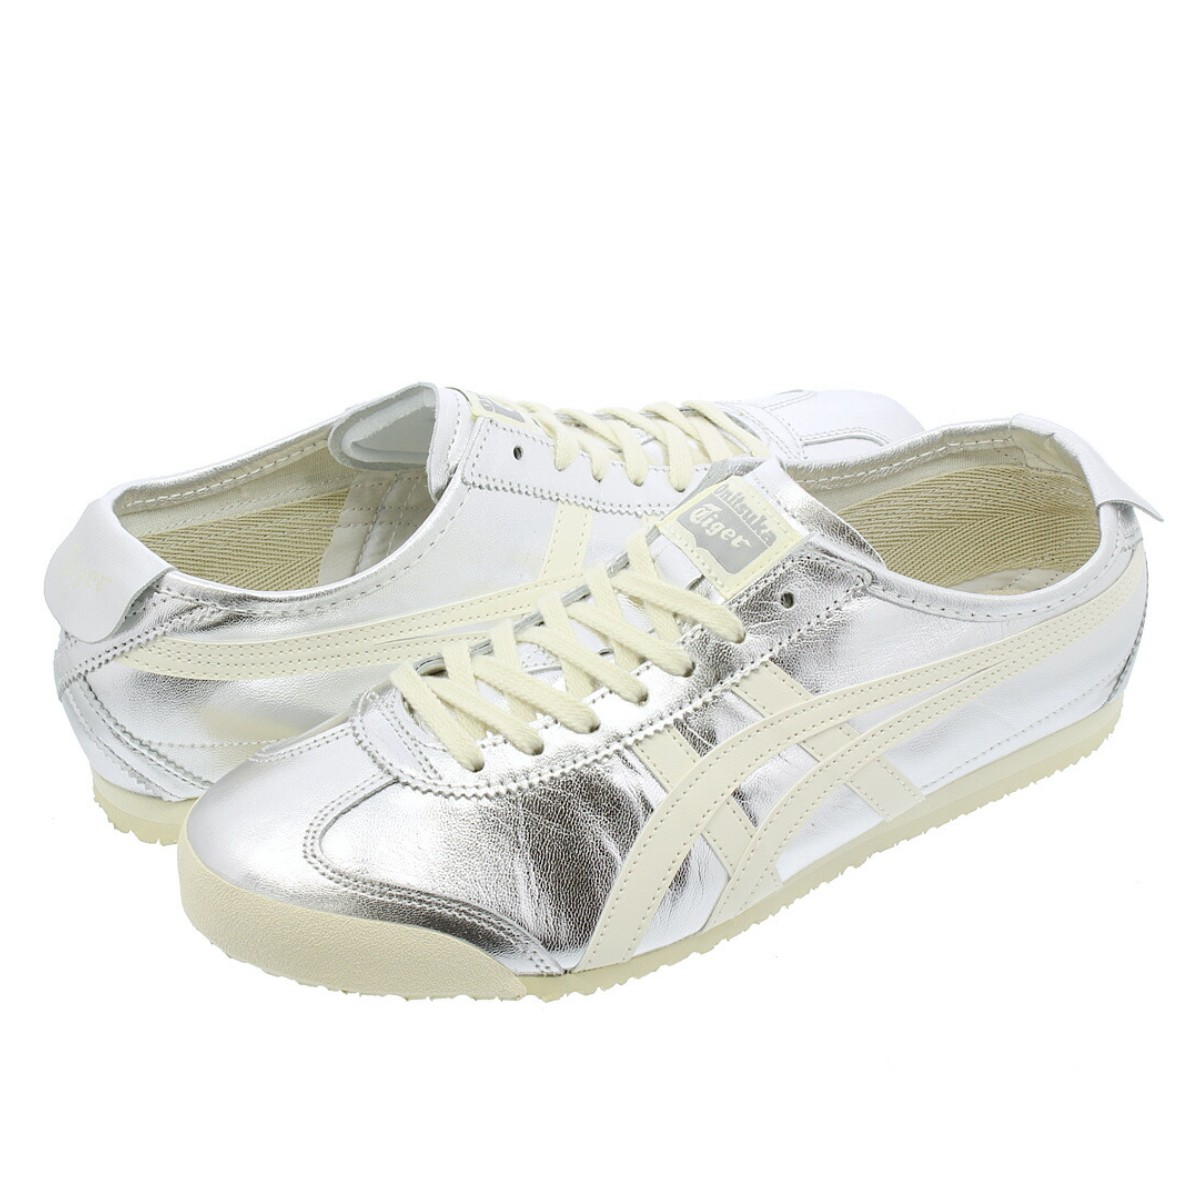 superior quality 596b7 68553 Onitsuka Tiger MEXICO 66 Onitsuka tiger Mexico 66 SILVER/WHITE